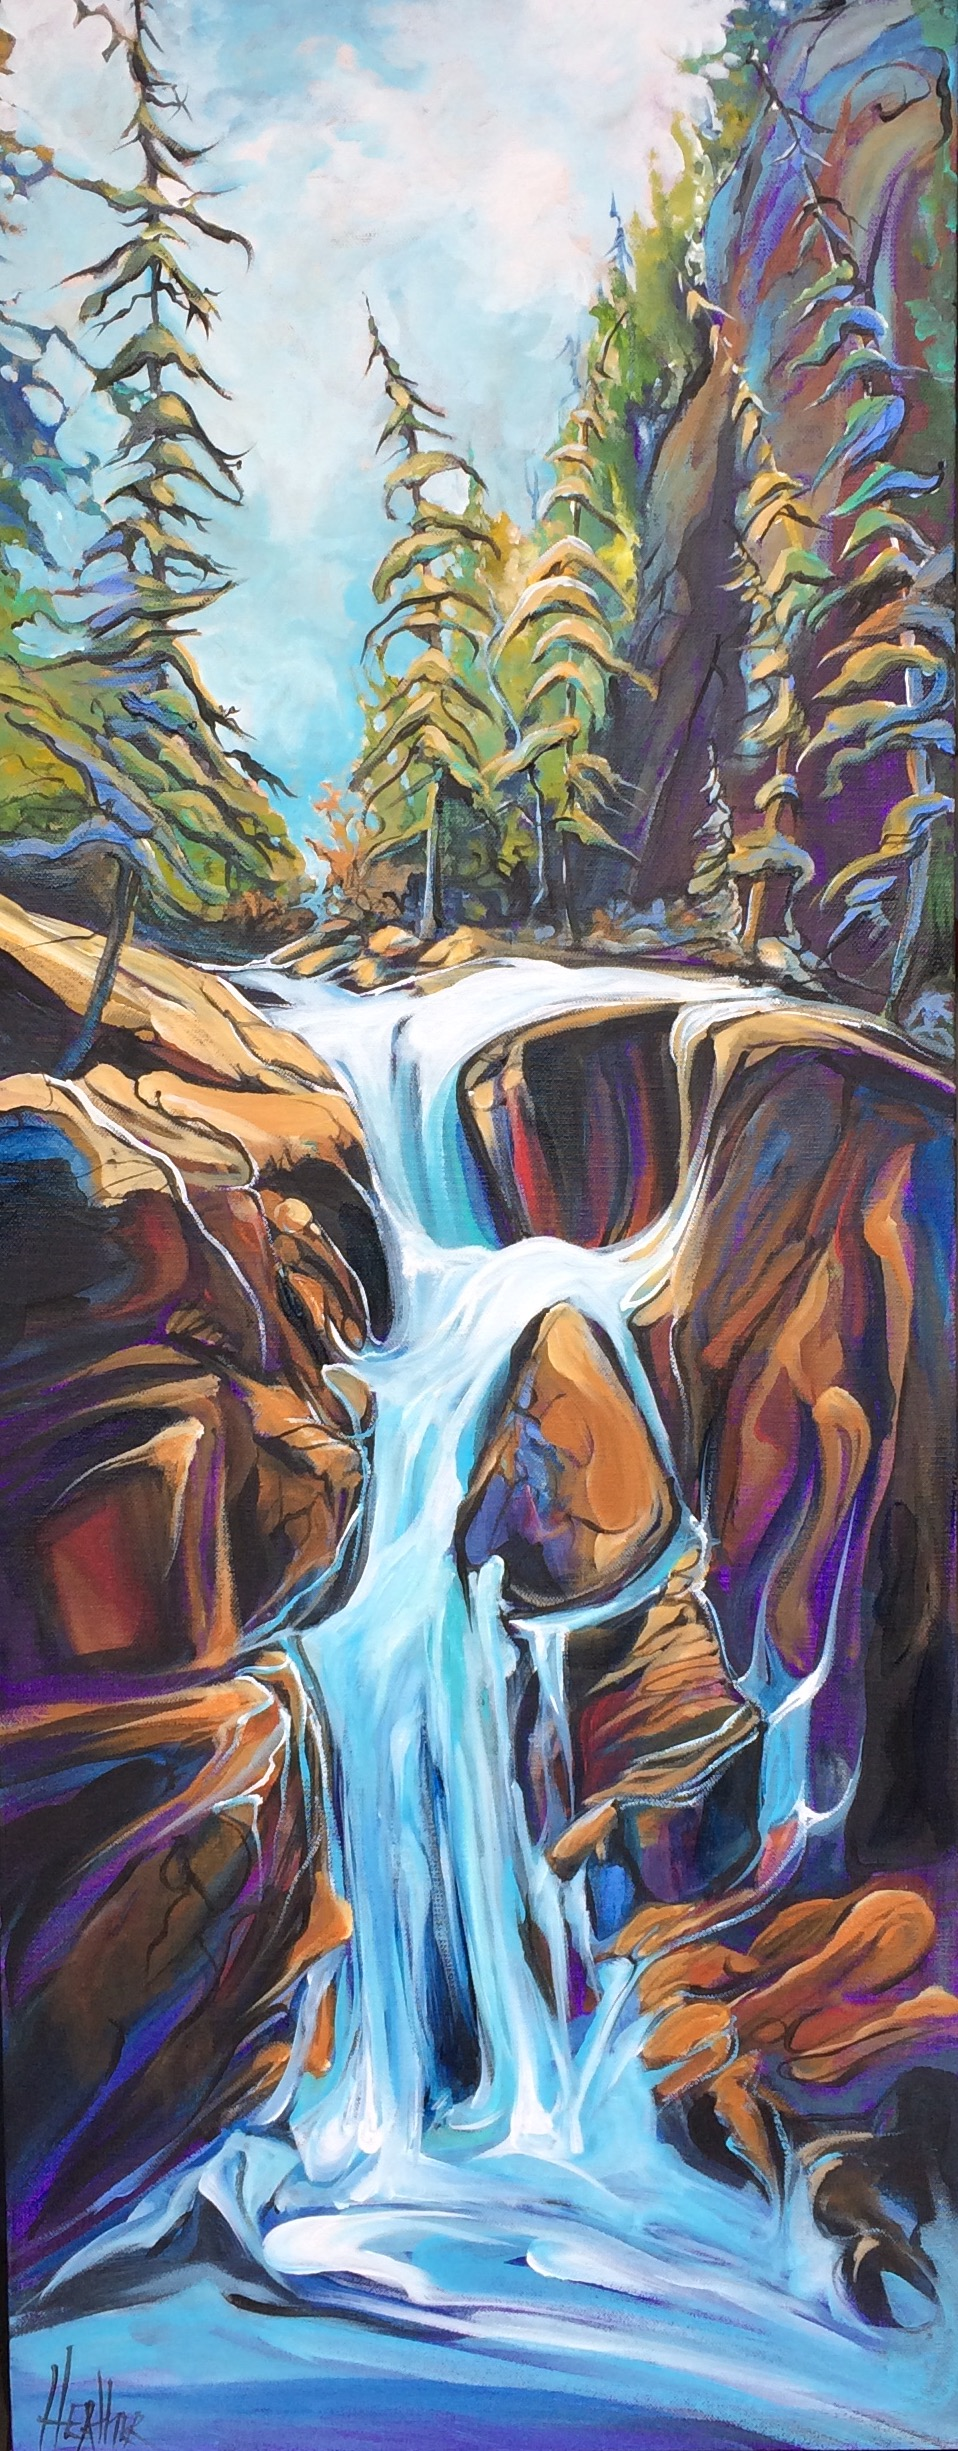 Once upon a Waterfall 16 x 40